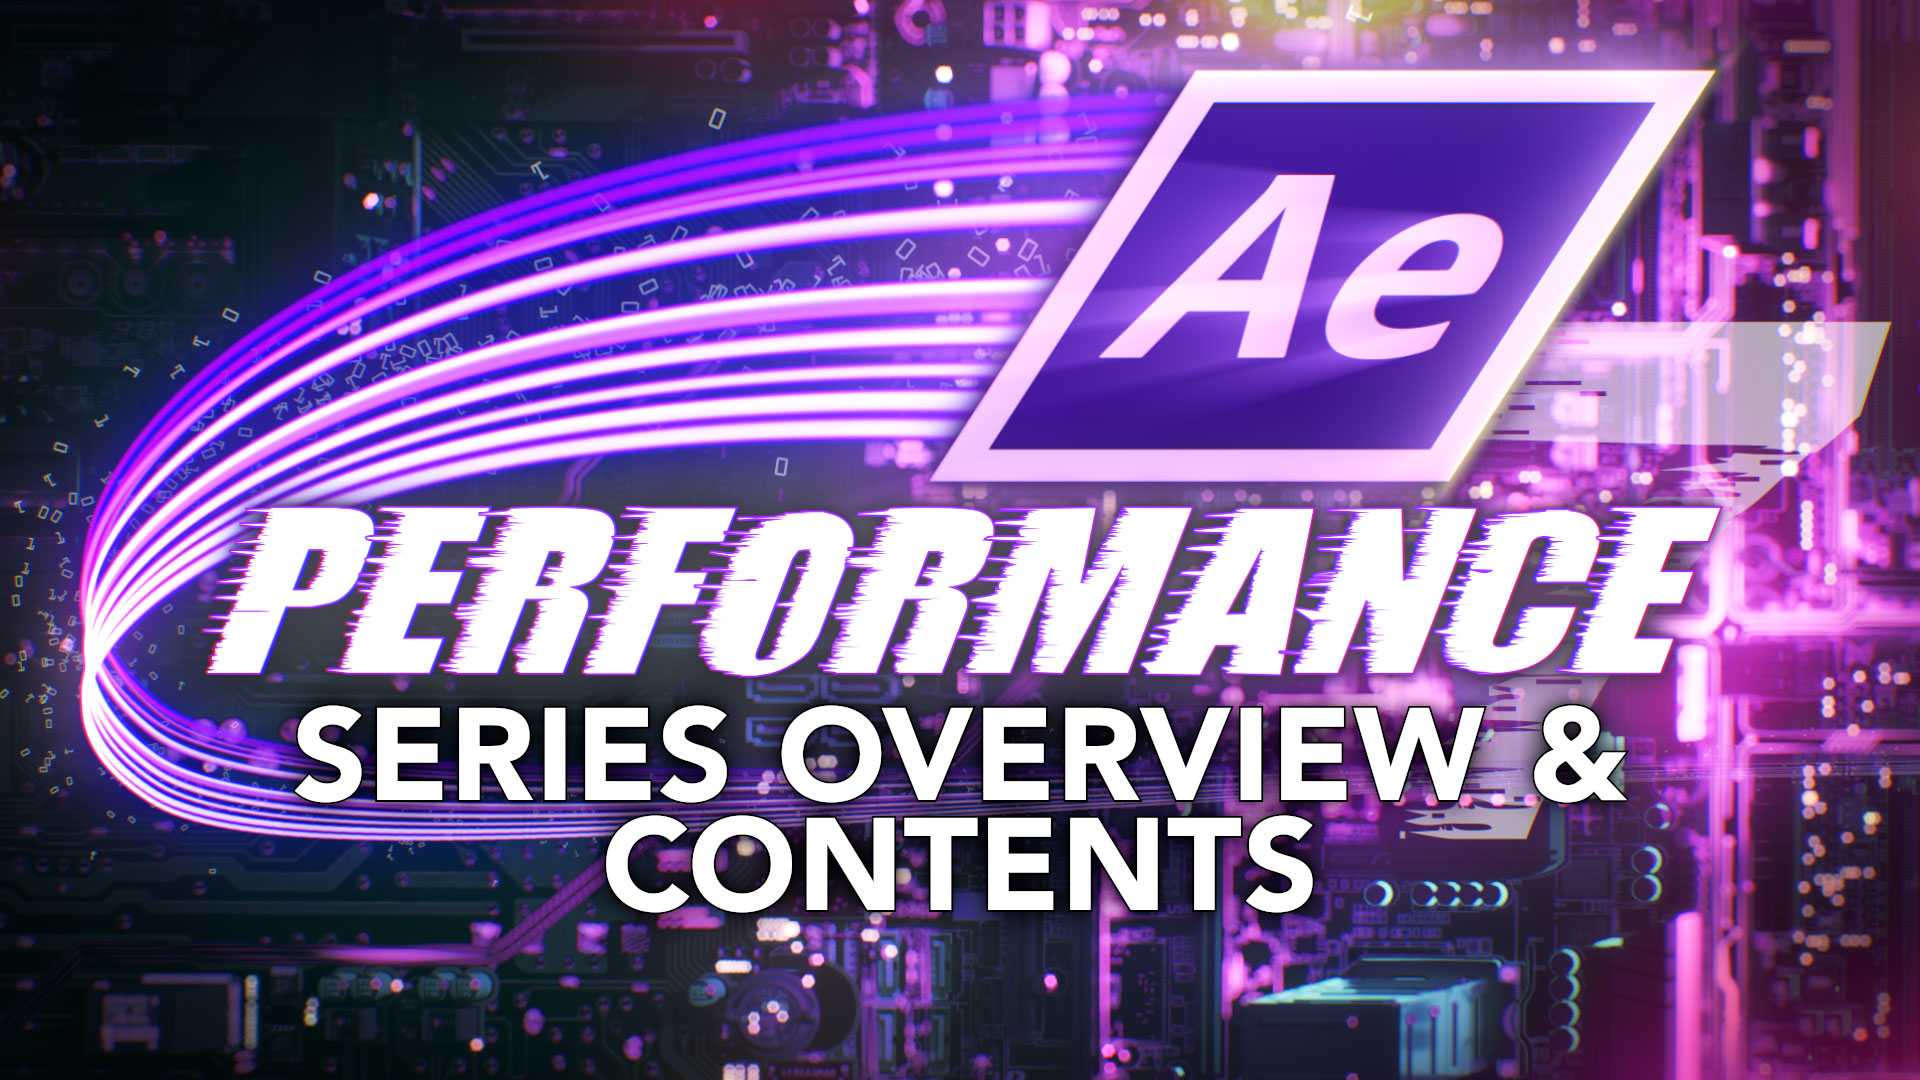 After Effects & Performance. Series Overview & Contents 40